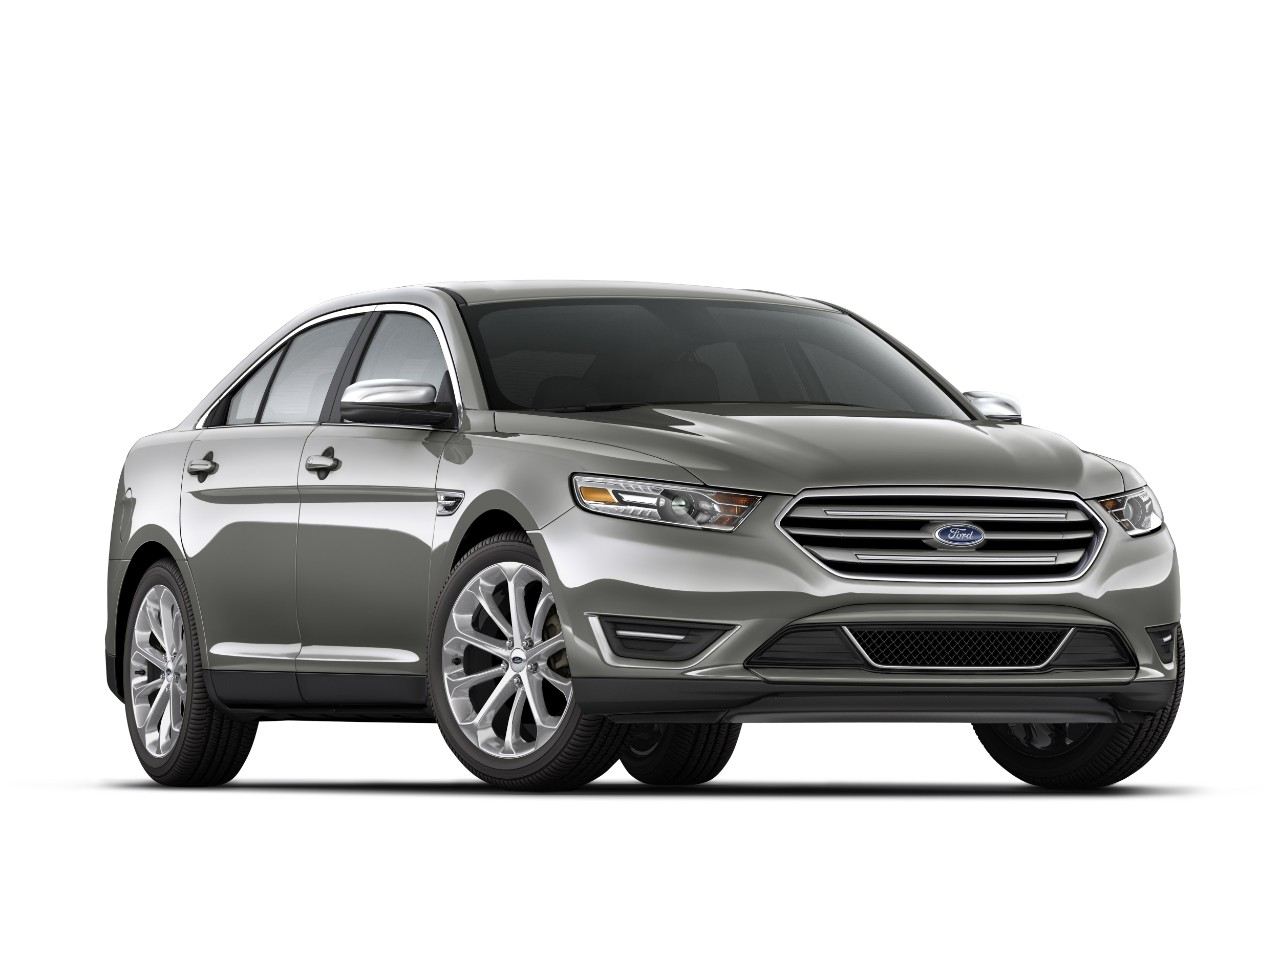 2016 ford taurus quality review the car connection. Black Bedroom Furniture Sets. Home Design Ideas